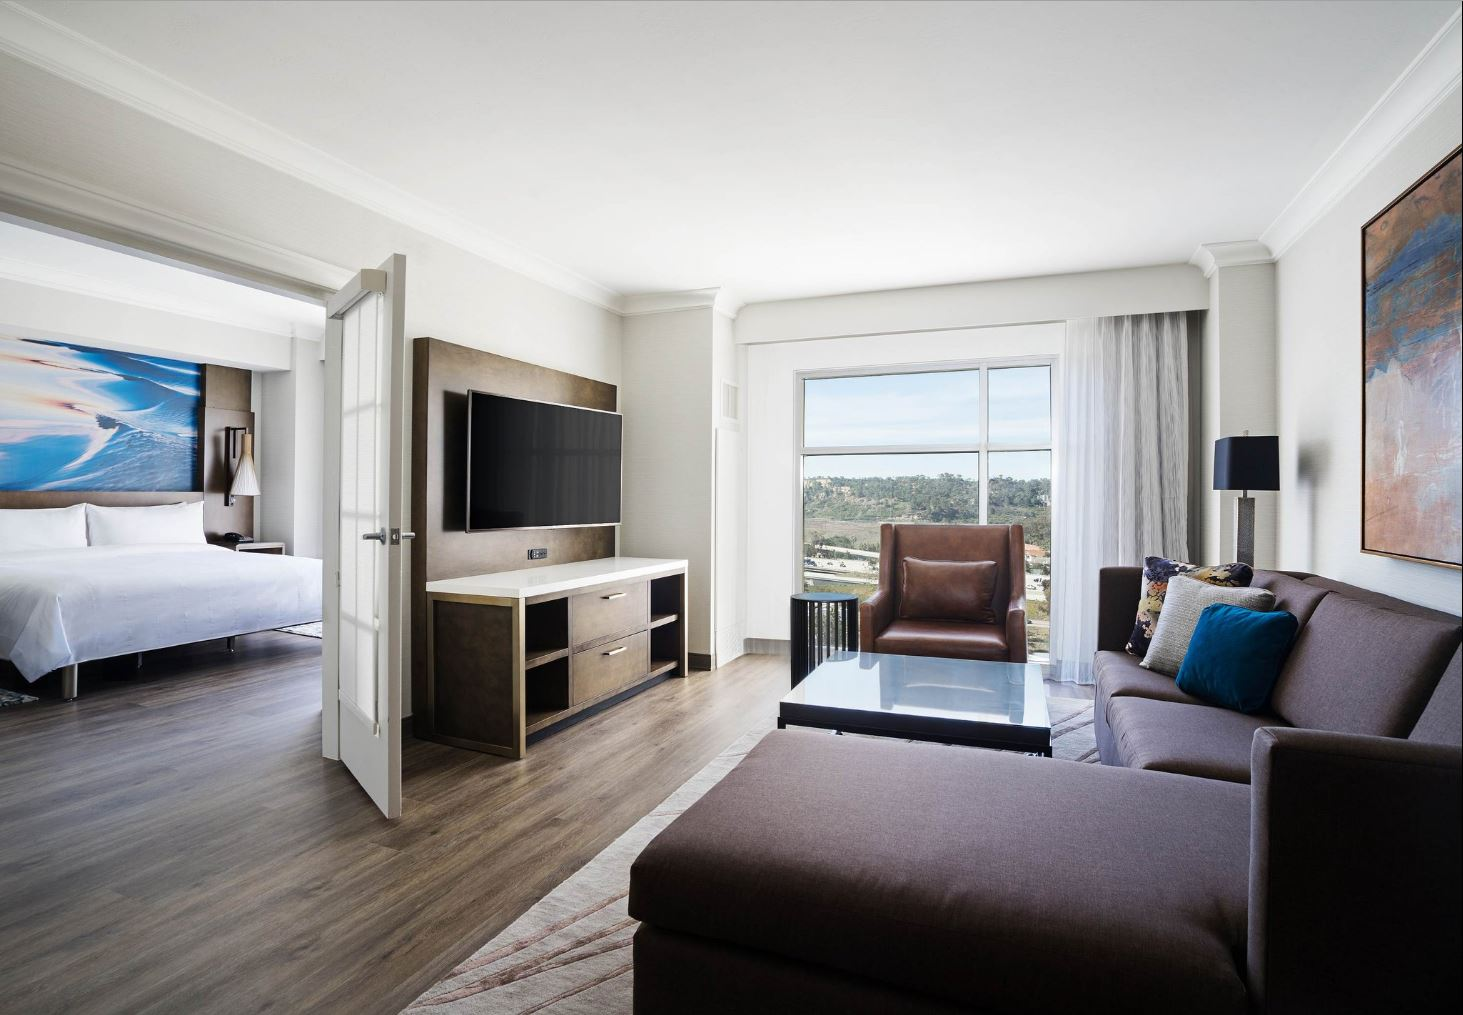 MARRIOTT-DEL MAR-SUITE.JPG